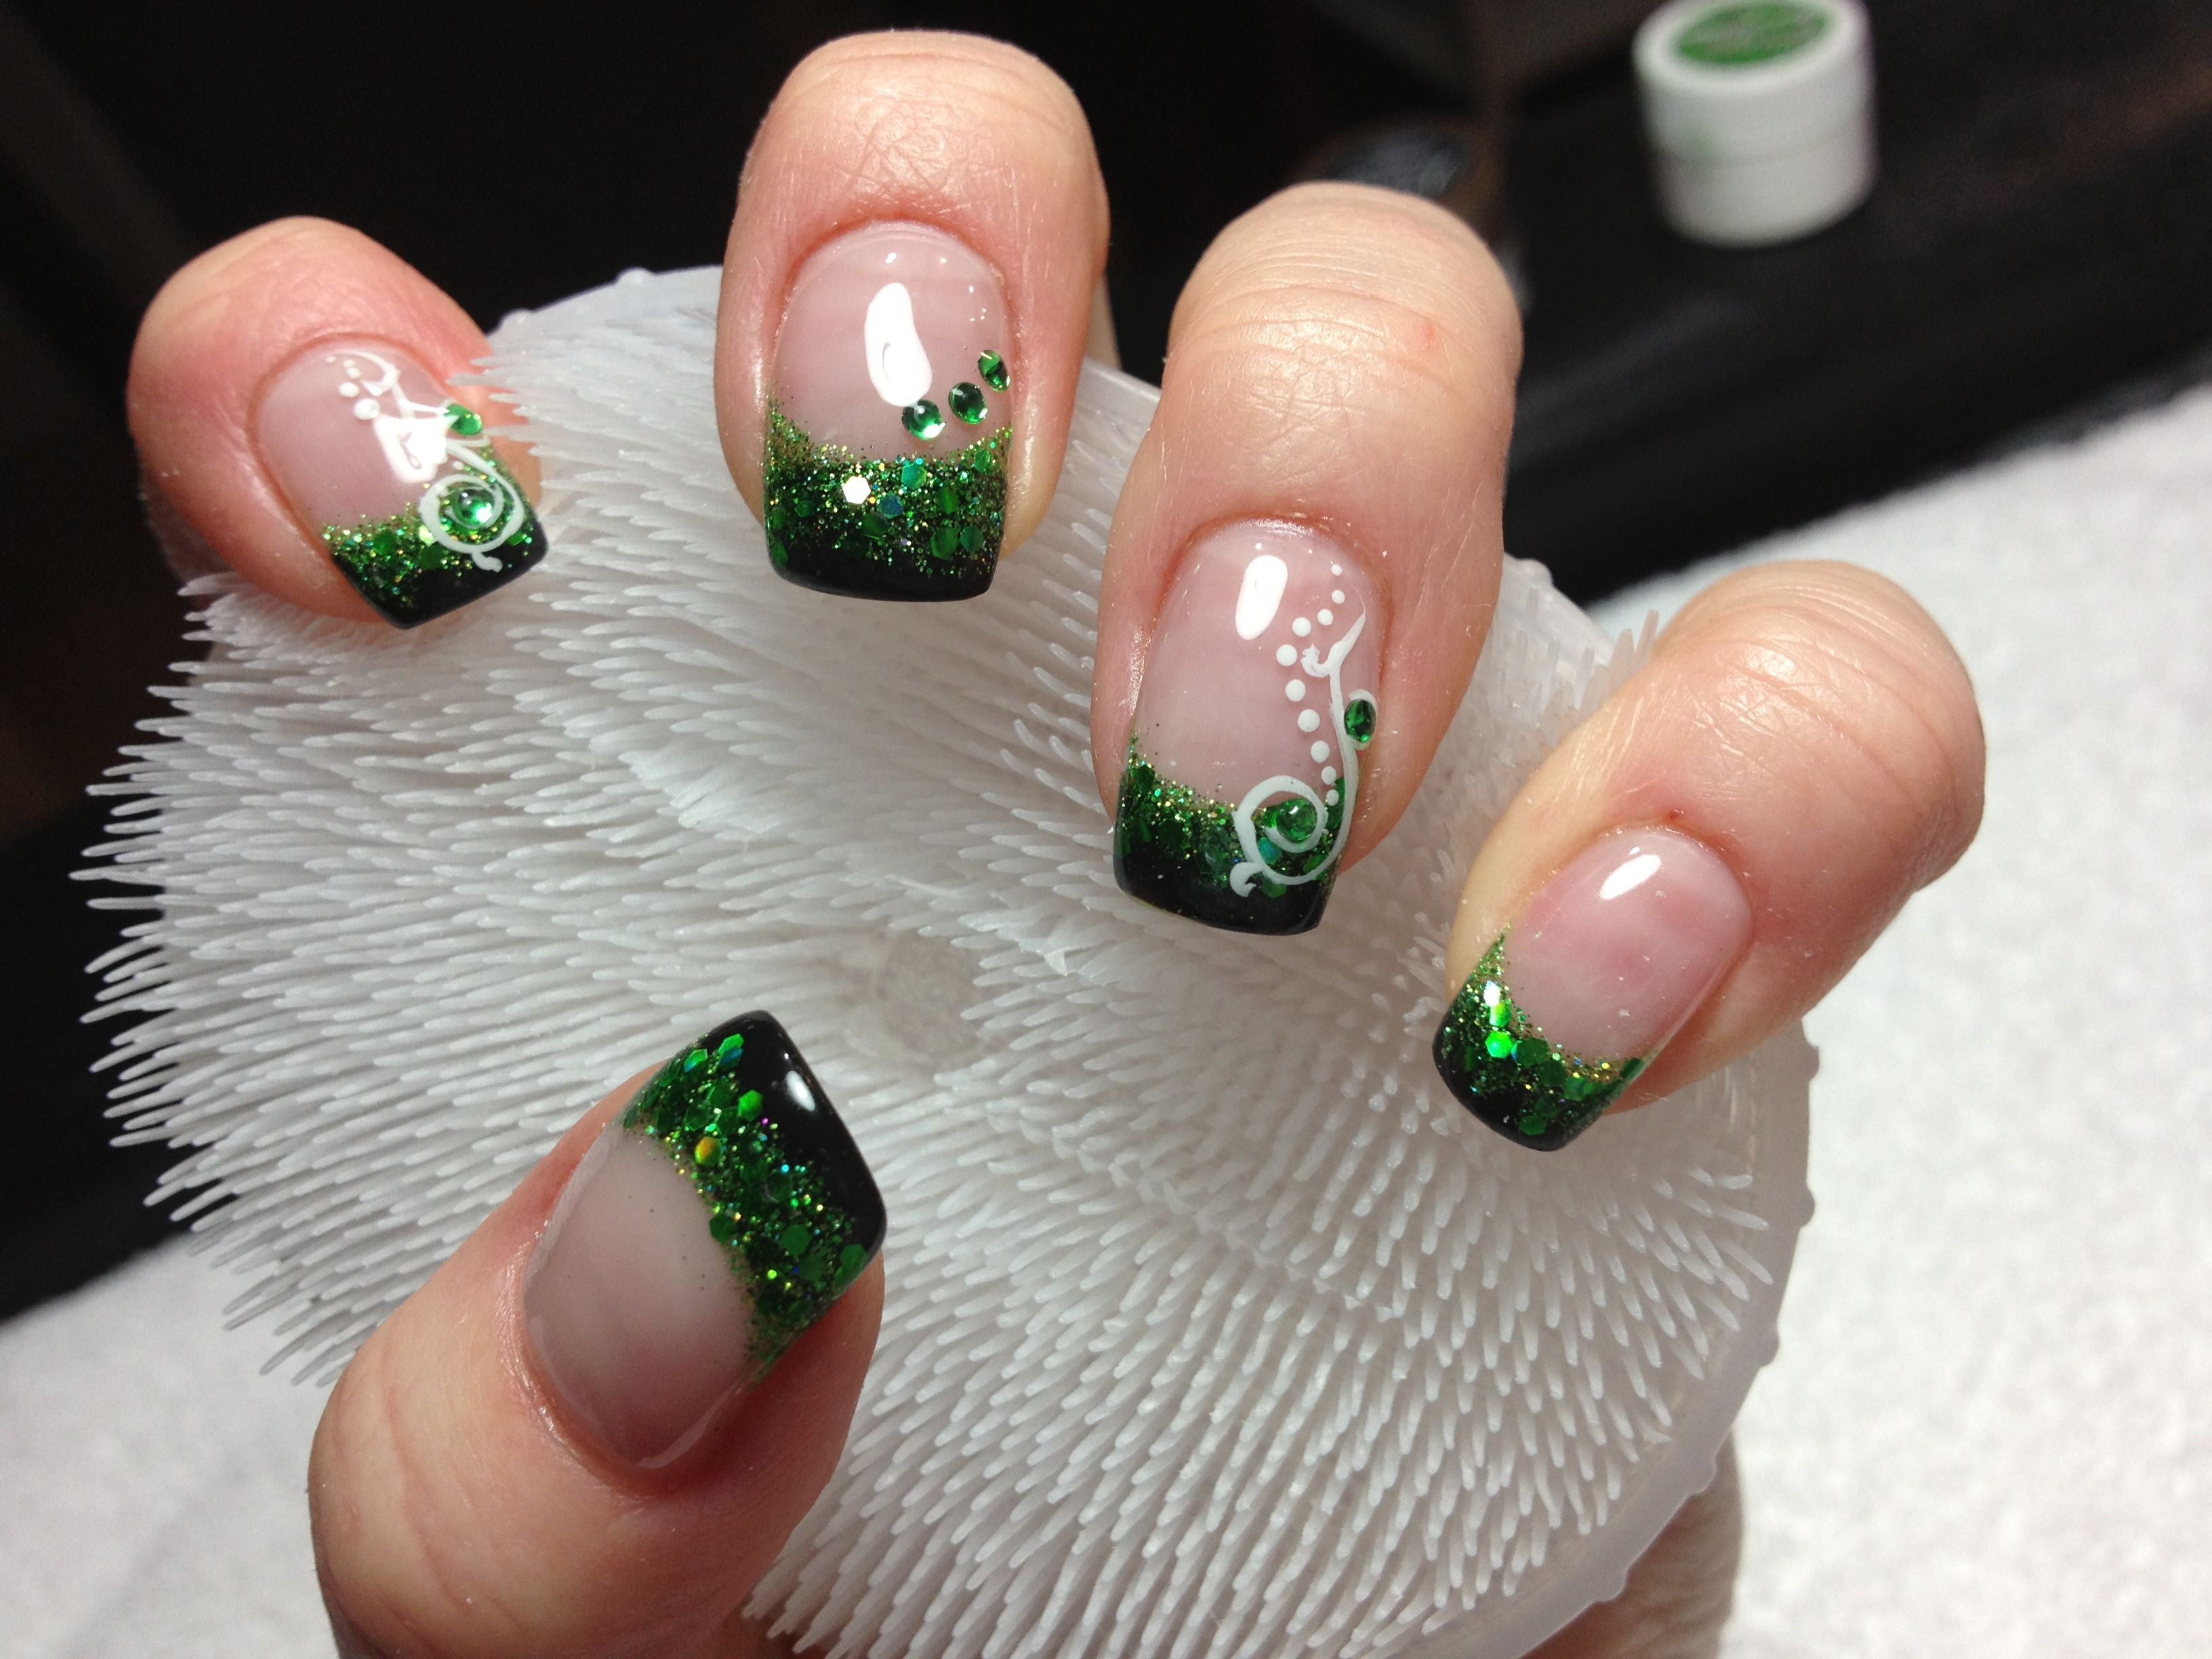 Black Green Glitter Gel And Green Dots With White Polish Hand Painted Designs Trends Beauty Summer Work Nails Pretty Nails Nail Designs